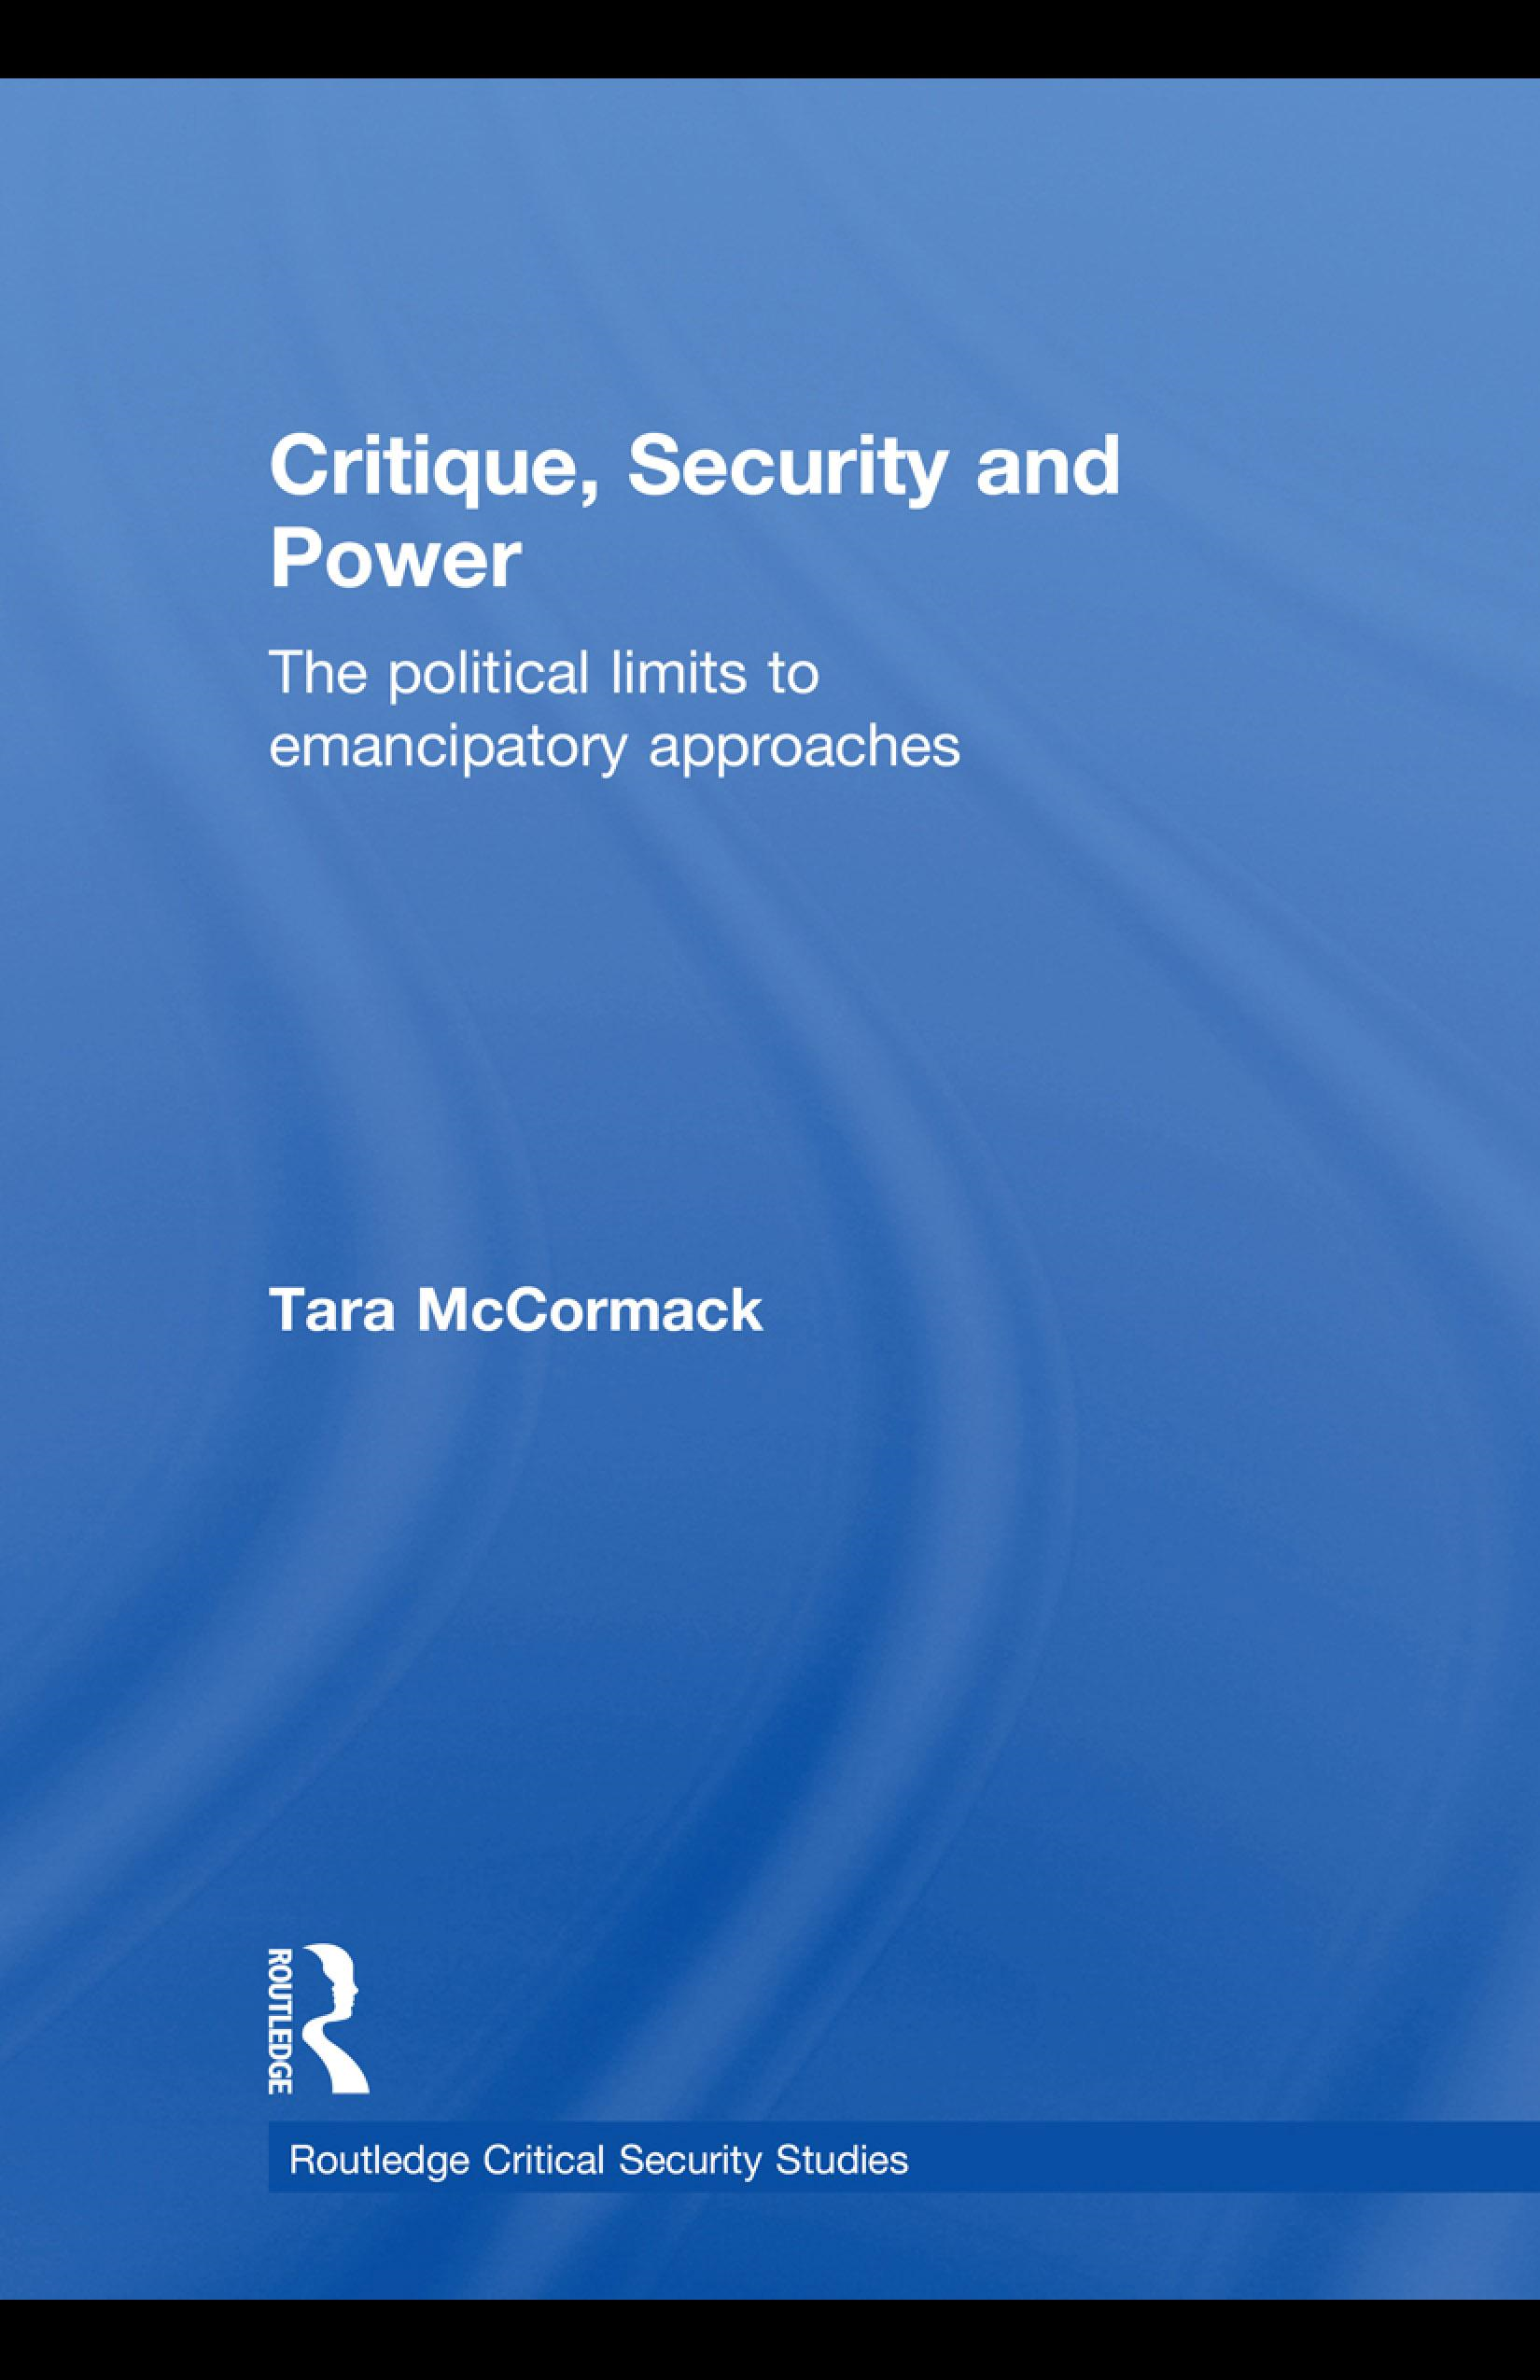 Critique, Security and Power: The Political Limits to Emancipatory Approaches